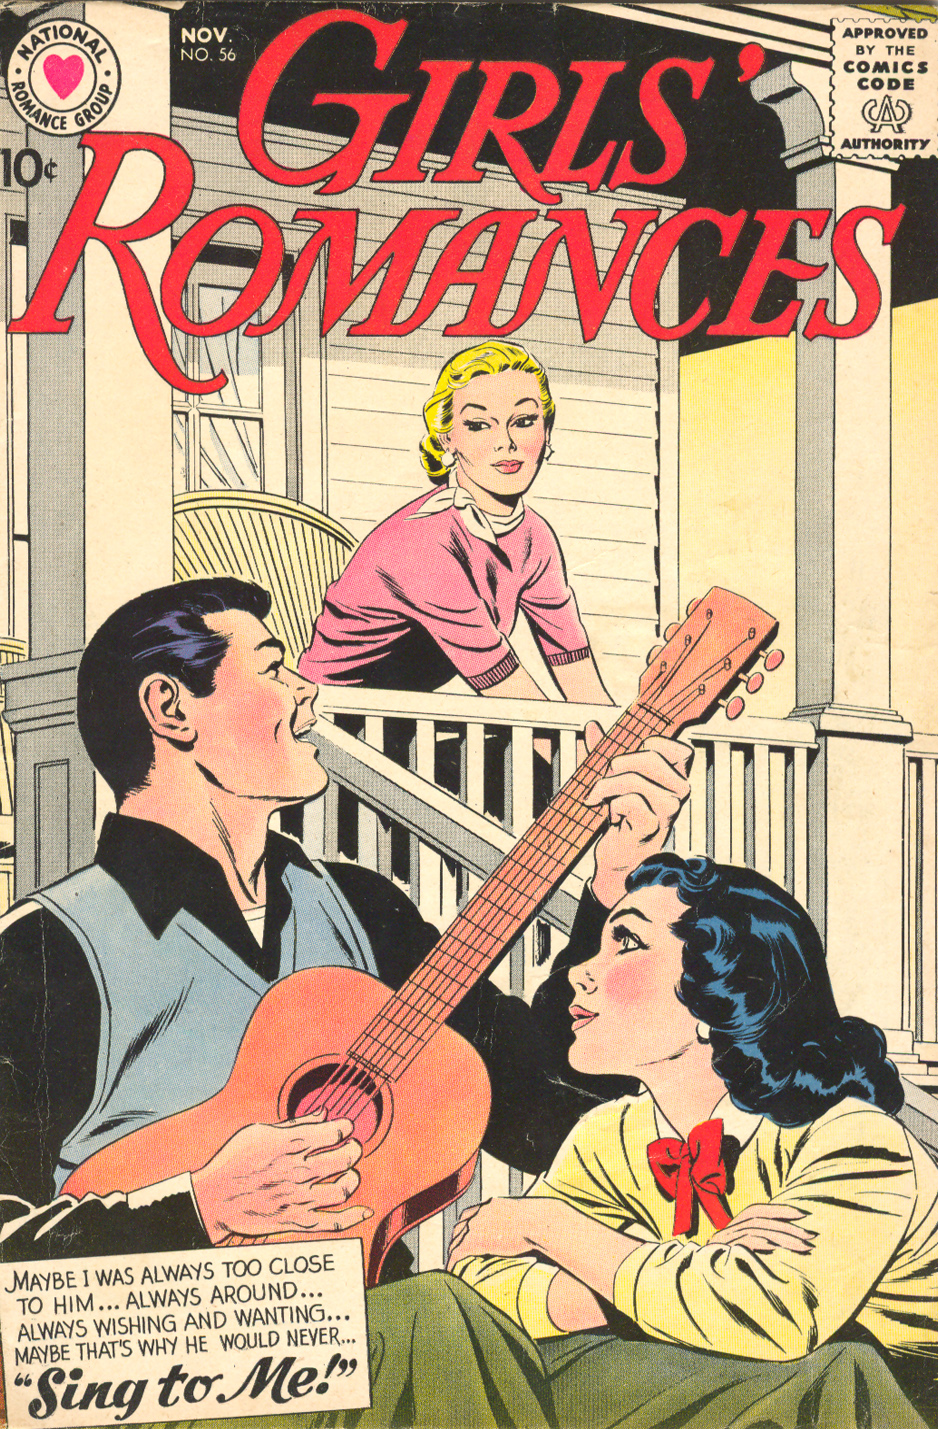 A brief history of romance comic books